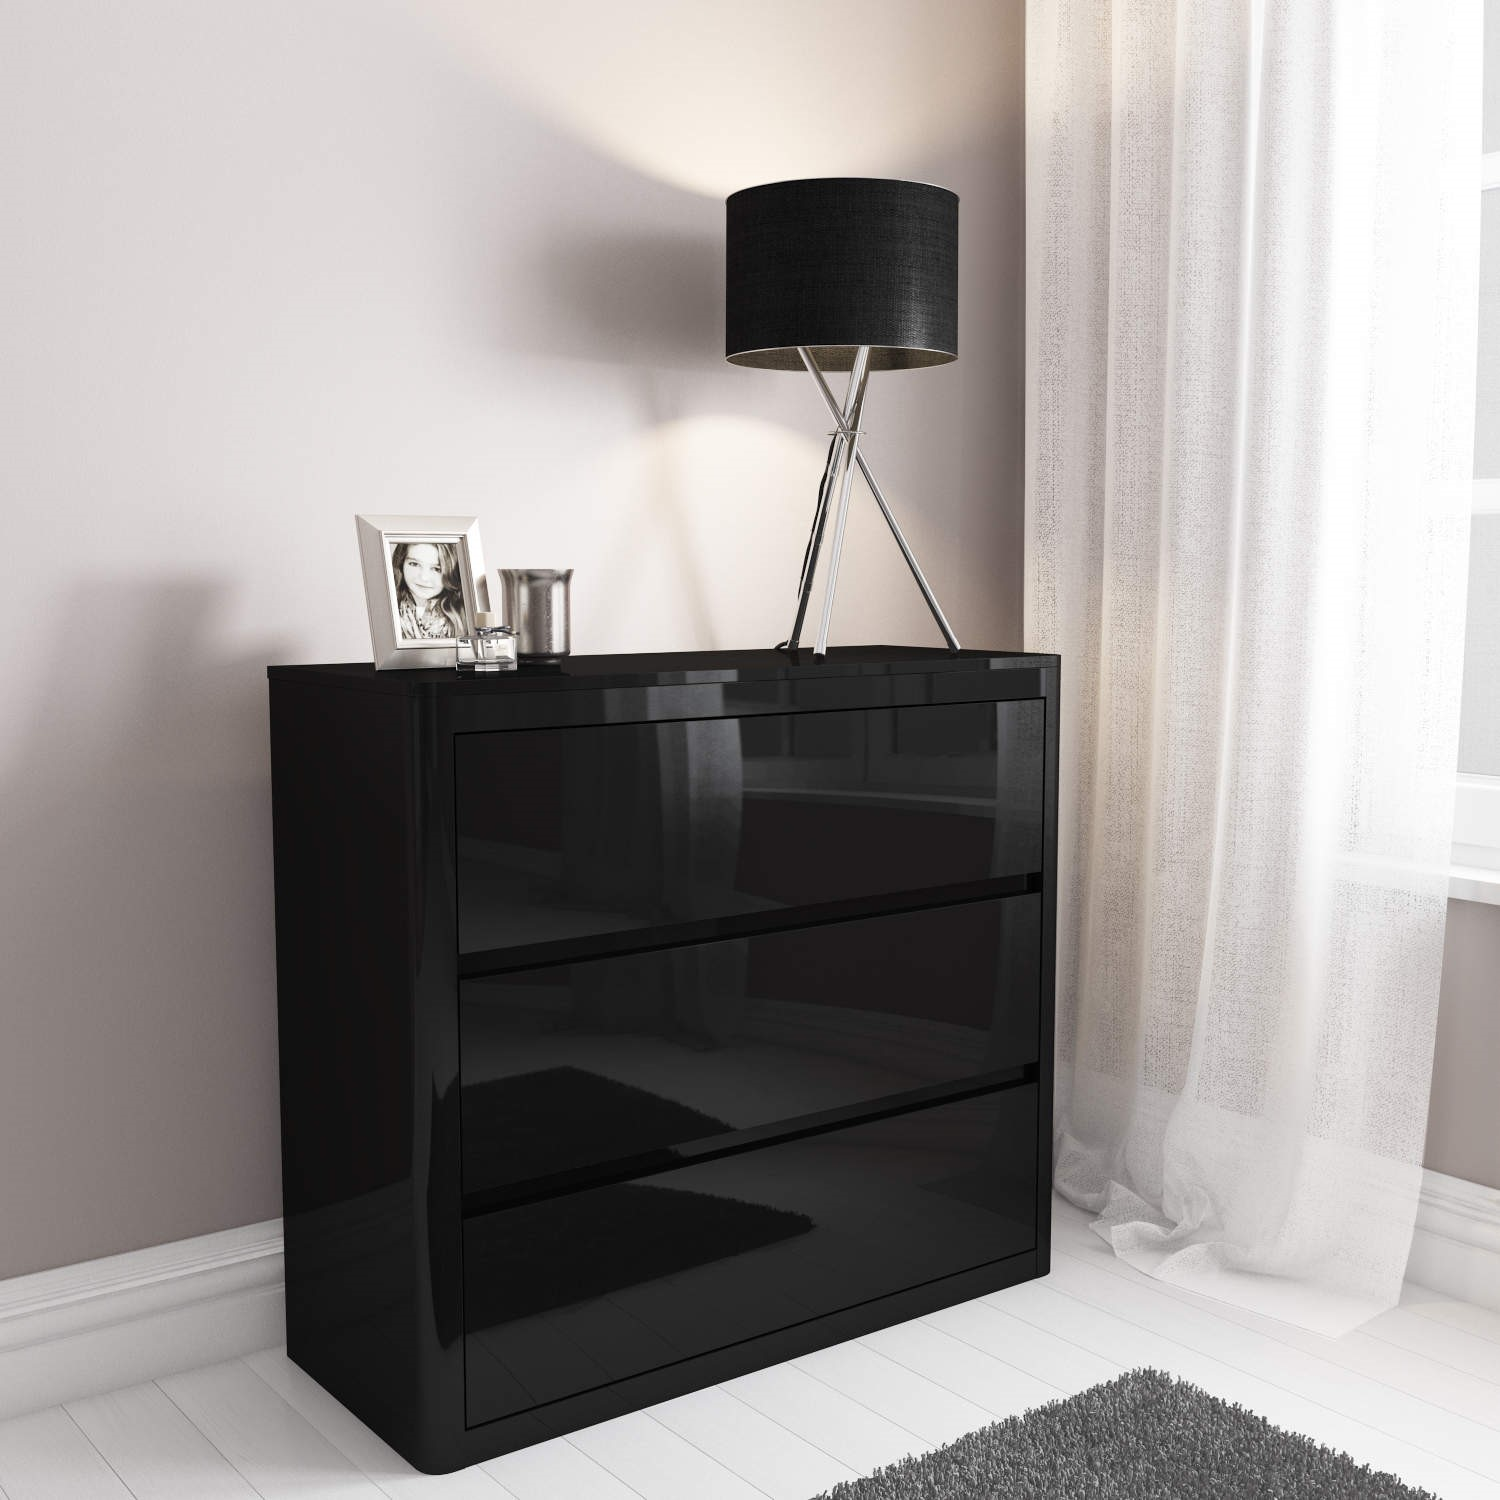 High gloss chest of drawers black 3 drawer cabinet bedroom furniture table